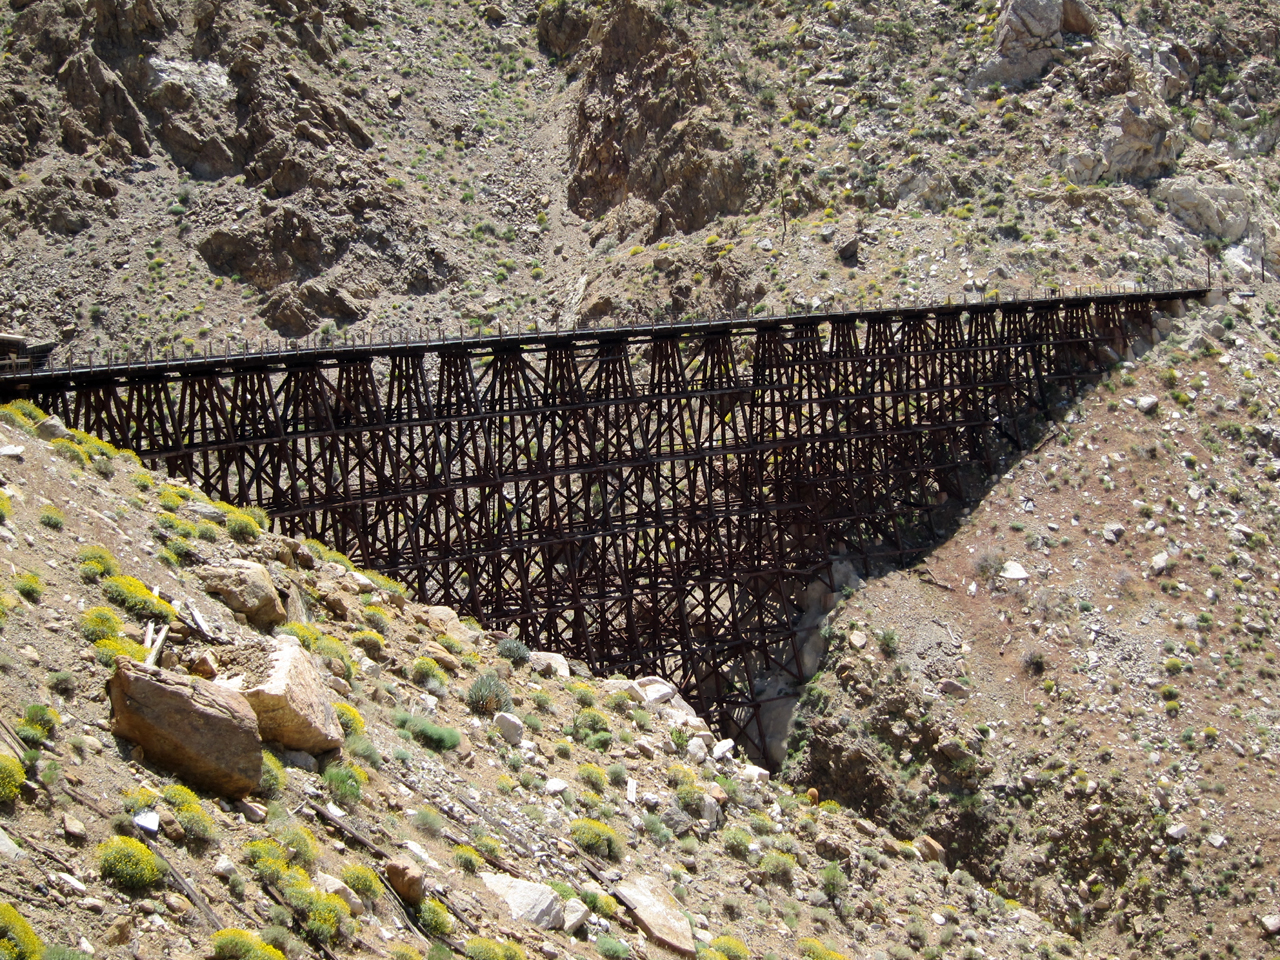 Another view of Goat Canyon Trestle